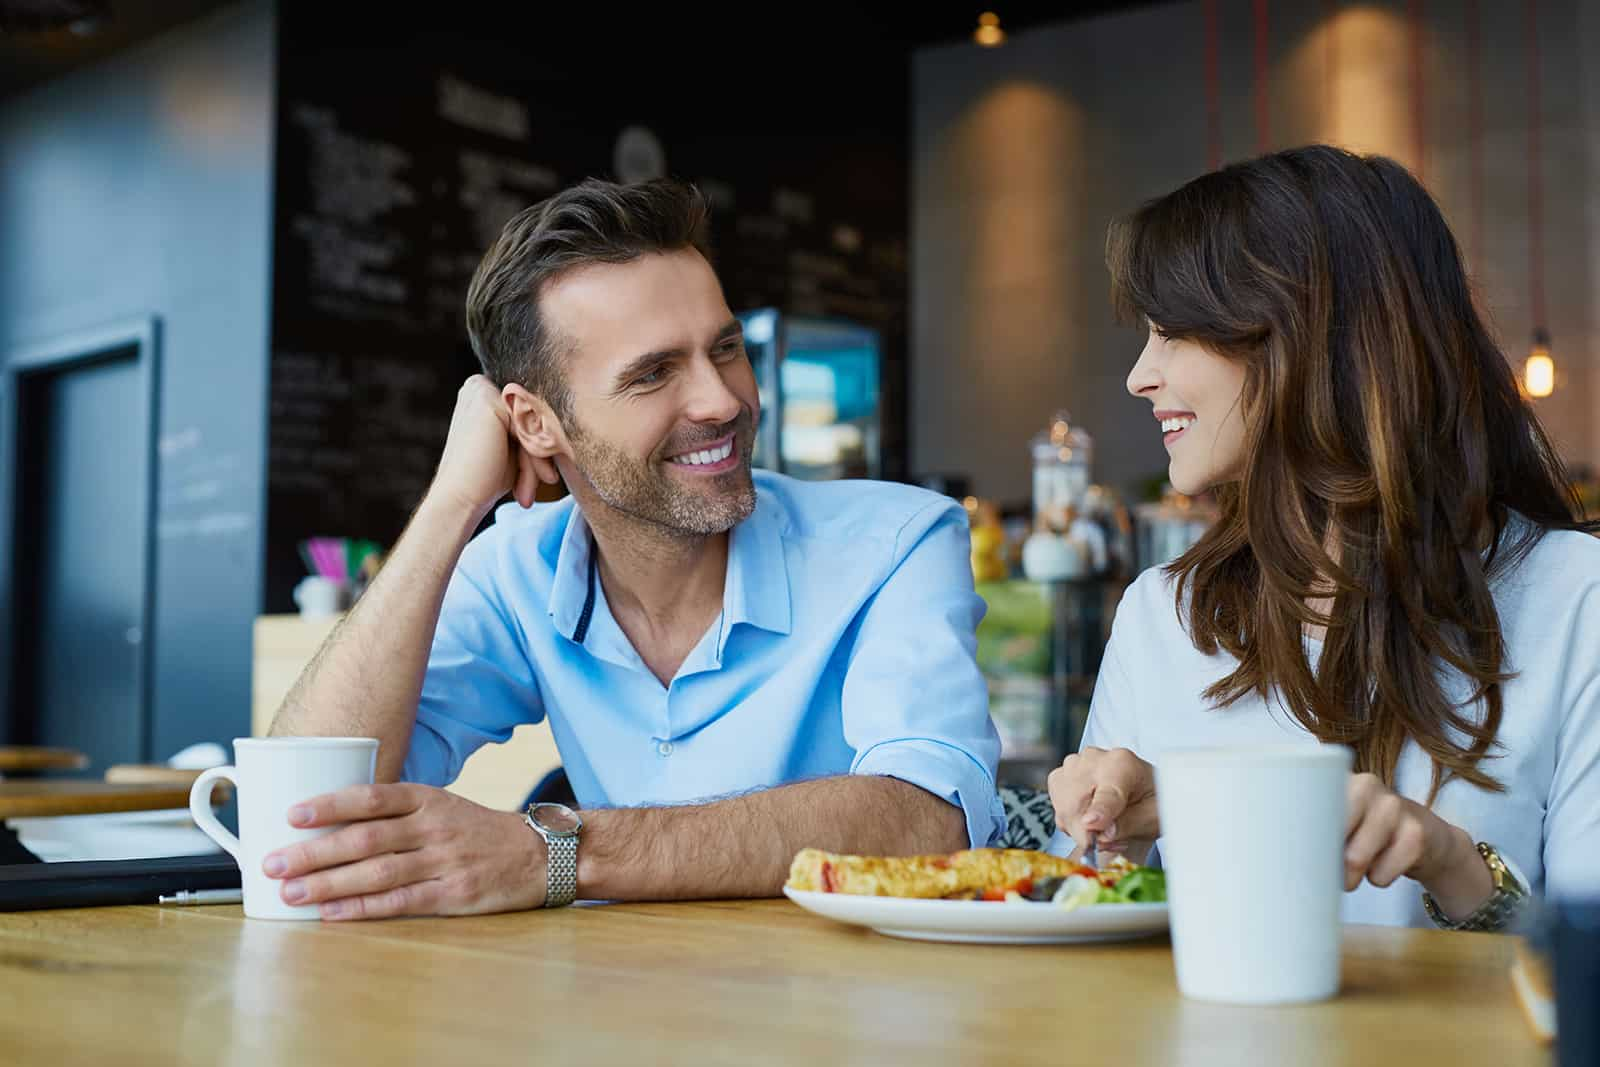 smiling man looking at a woman while having lunch in a cafe